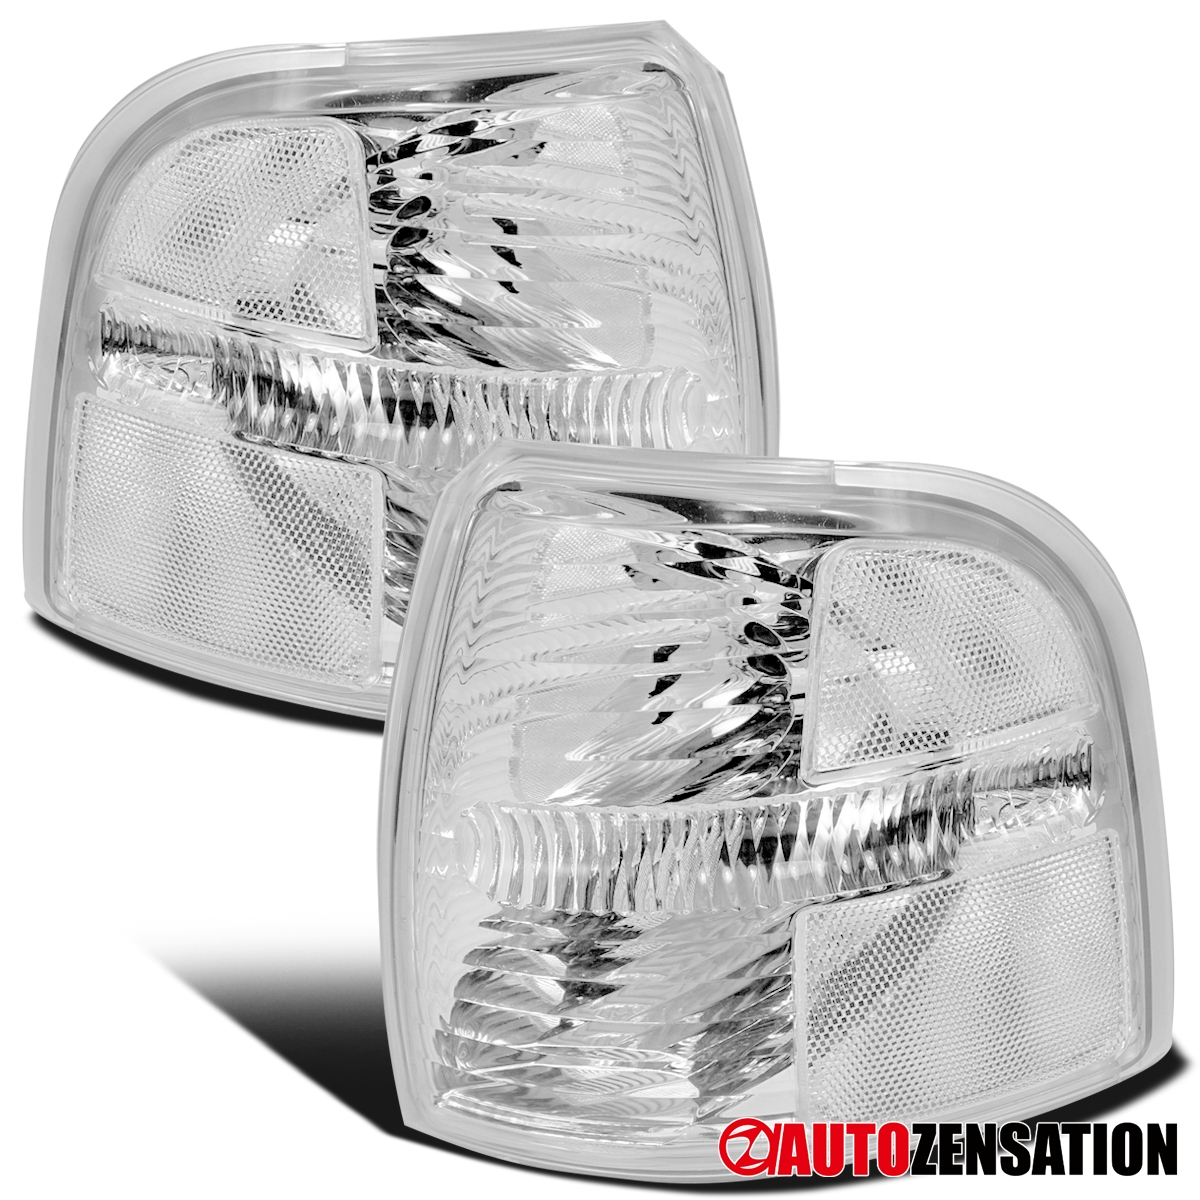 2002-2005 Ford Explorer Replacement Fog Light Lamp Set Left /& Right Clear